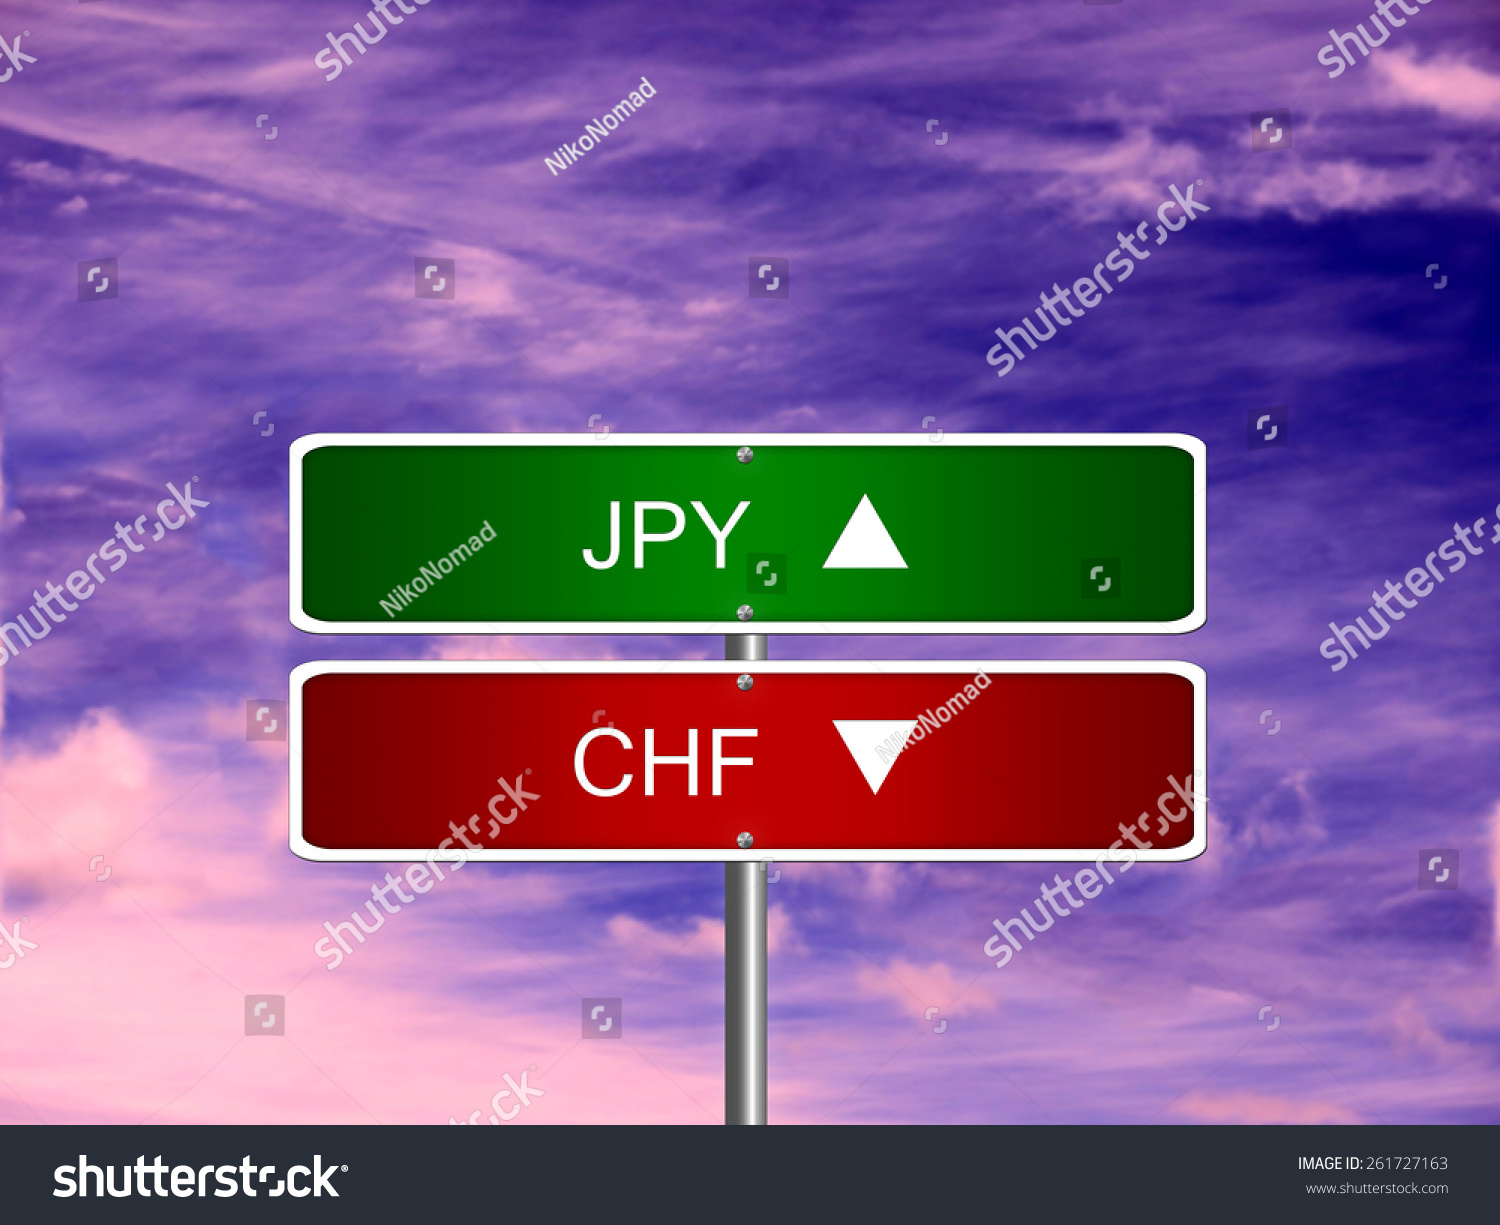 Currency chf symbol choice image symbols and meanings chf jpy switzerland japan swiss franc stock photo 261727163 chf jpy switzerland japan swiss franc japanese buycottarizona Images